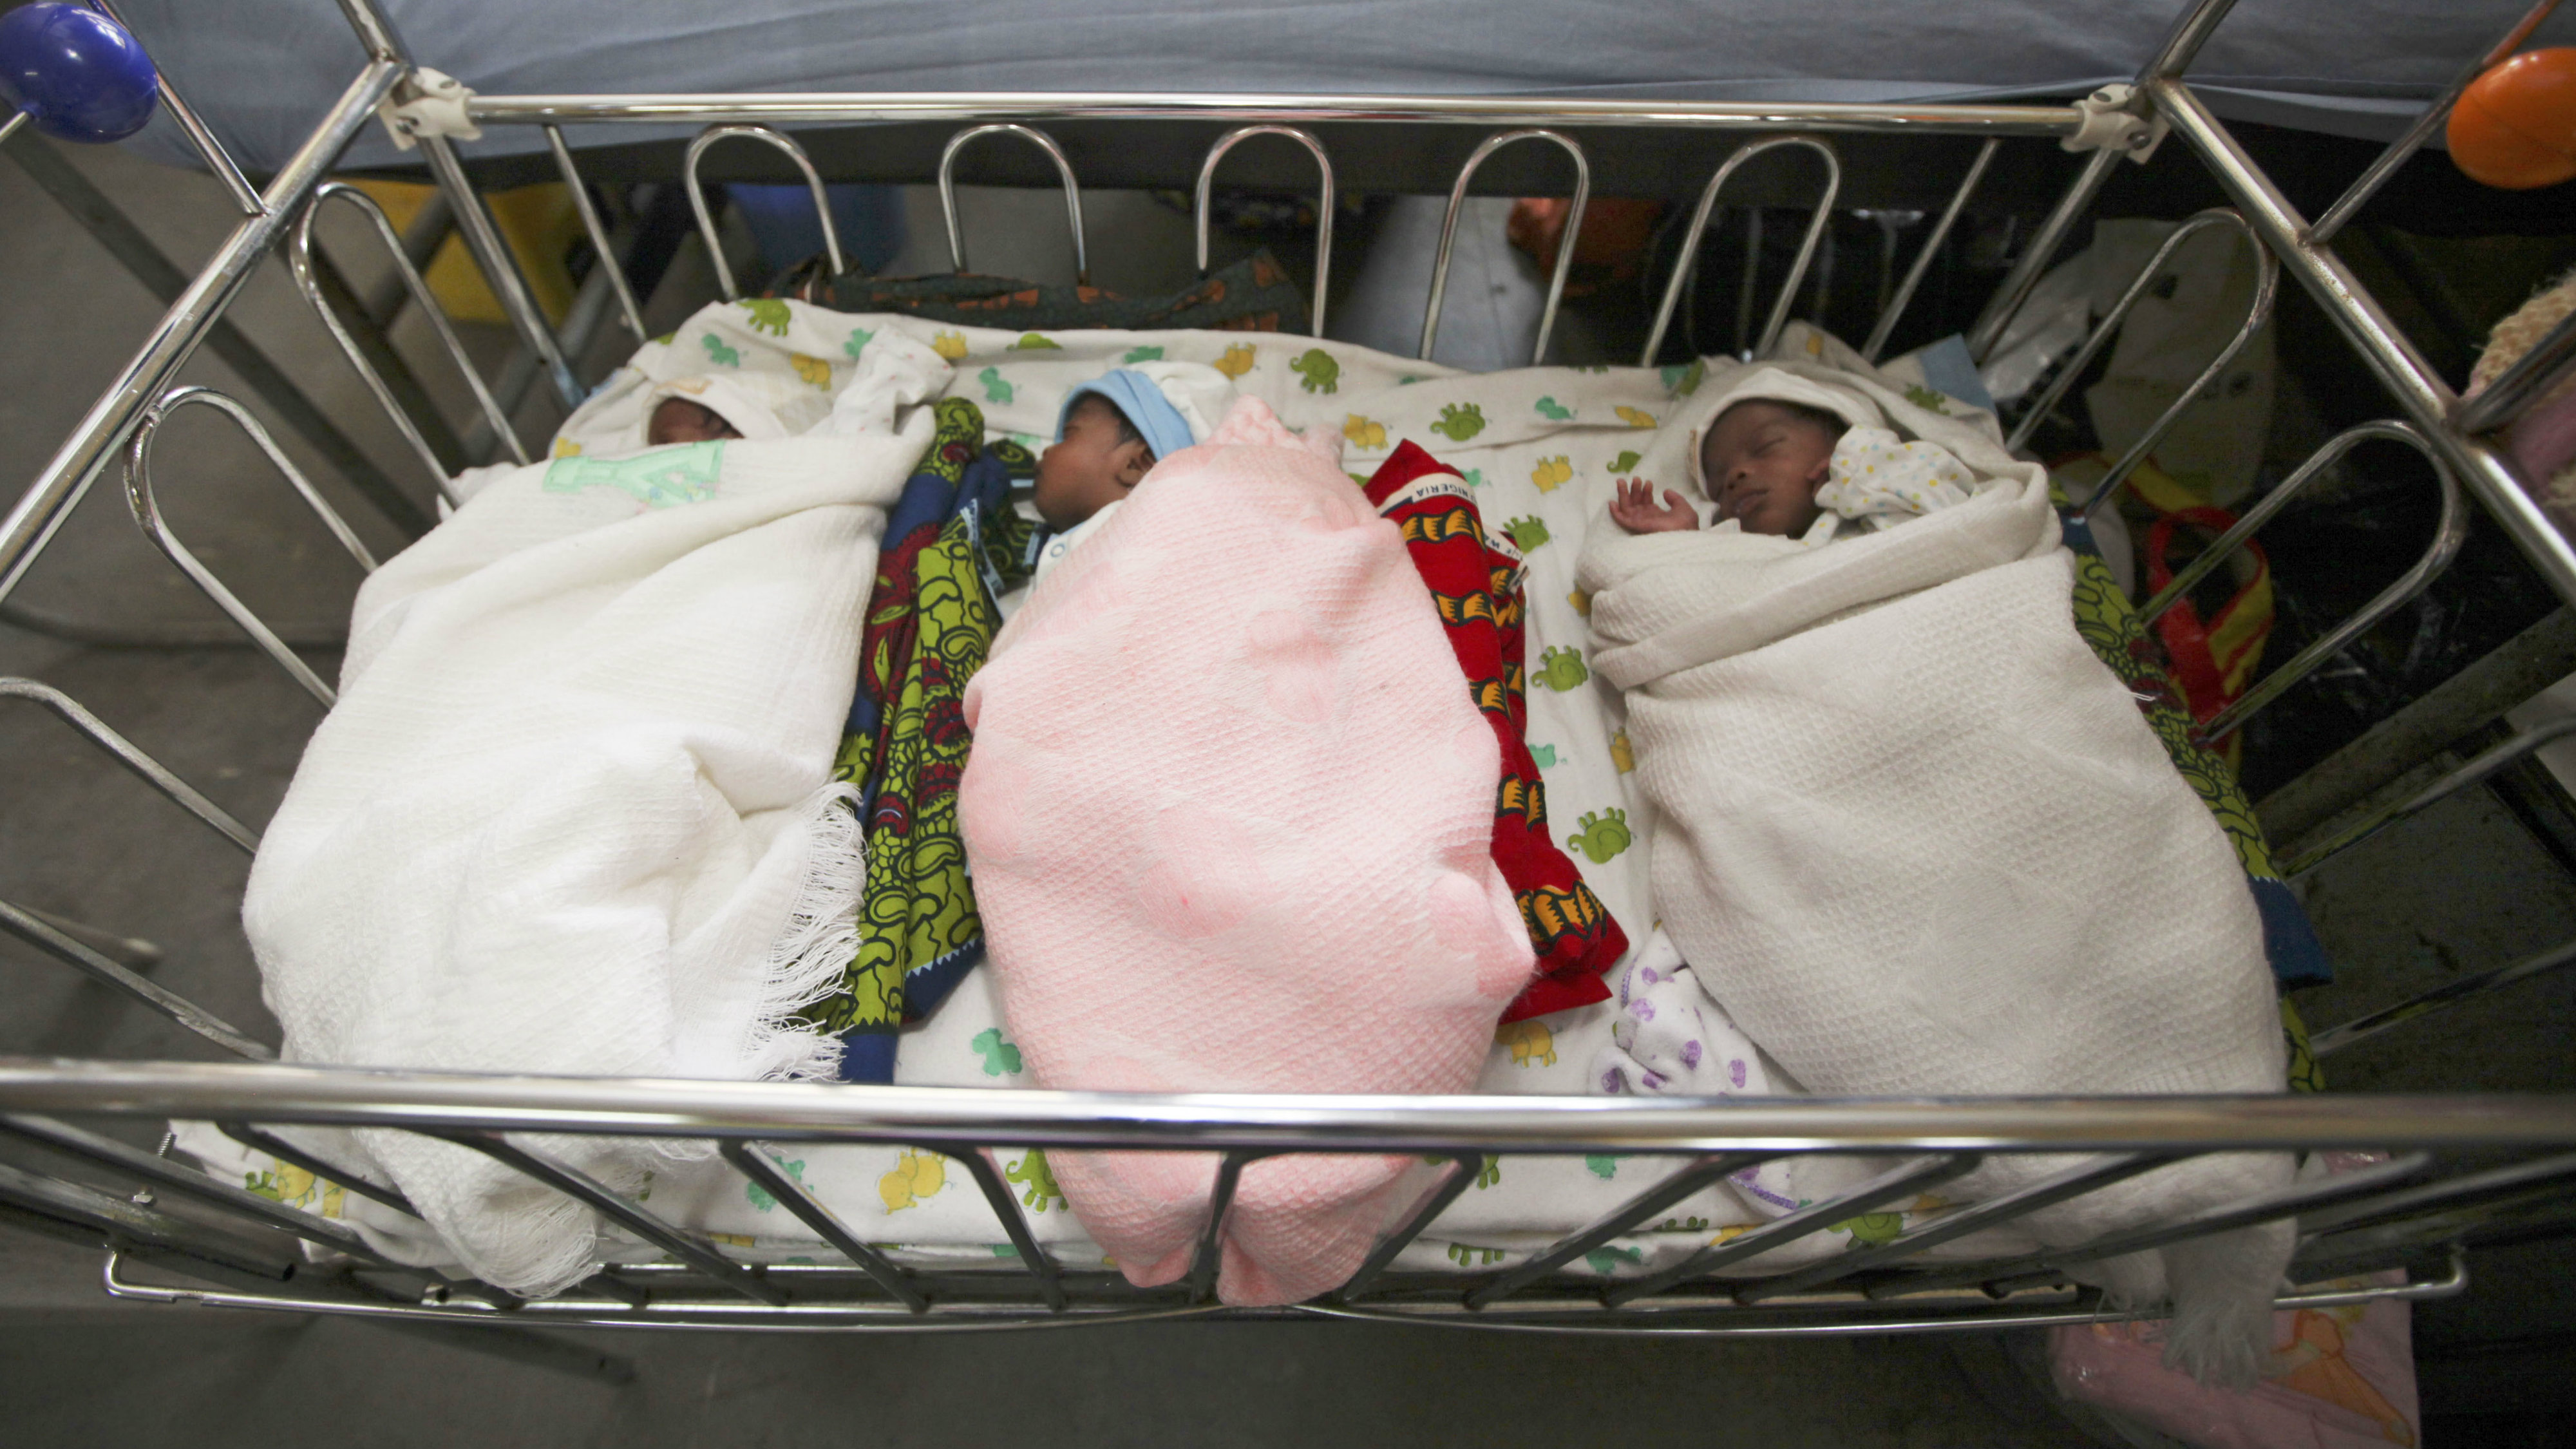 Newborn triplets Isaac, Treasure and Samuel sleep in a ward of the Lagos Island Maternity Hospital in Lagos, Nigeria, Monday, Oct. 31, 2011. Amid the millions of births and deaths around the world each day, it is impossible to pinpoint the arrival of the globe's 7 billionth occupant. But the U.N. chose Monday to mark the day with a string of festivities worldwide, and a series of symbolic 7-billionth babies being born. Nigeria is Africa's most populous country with more than 160 million people.